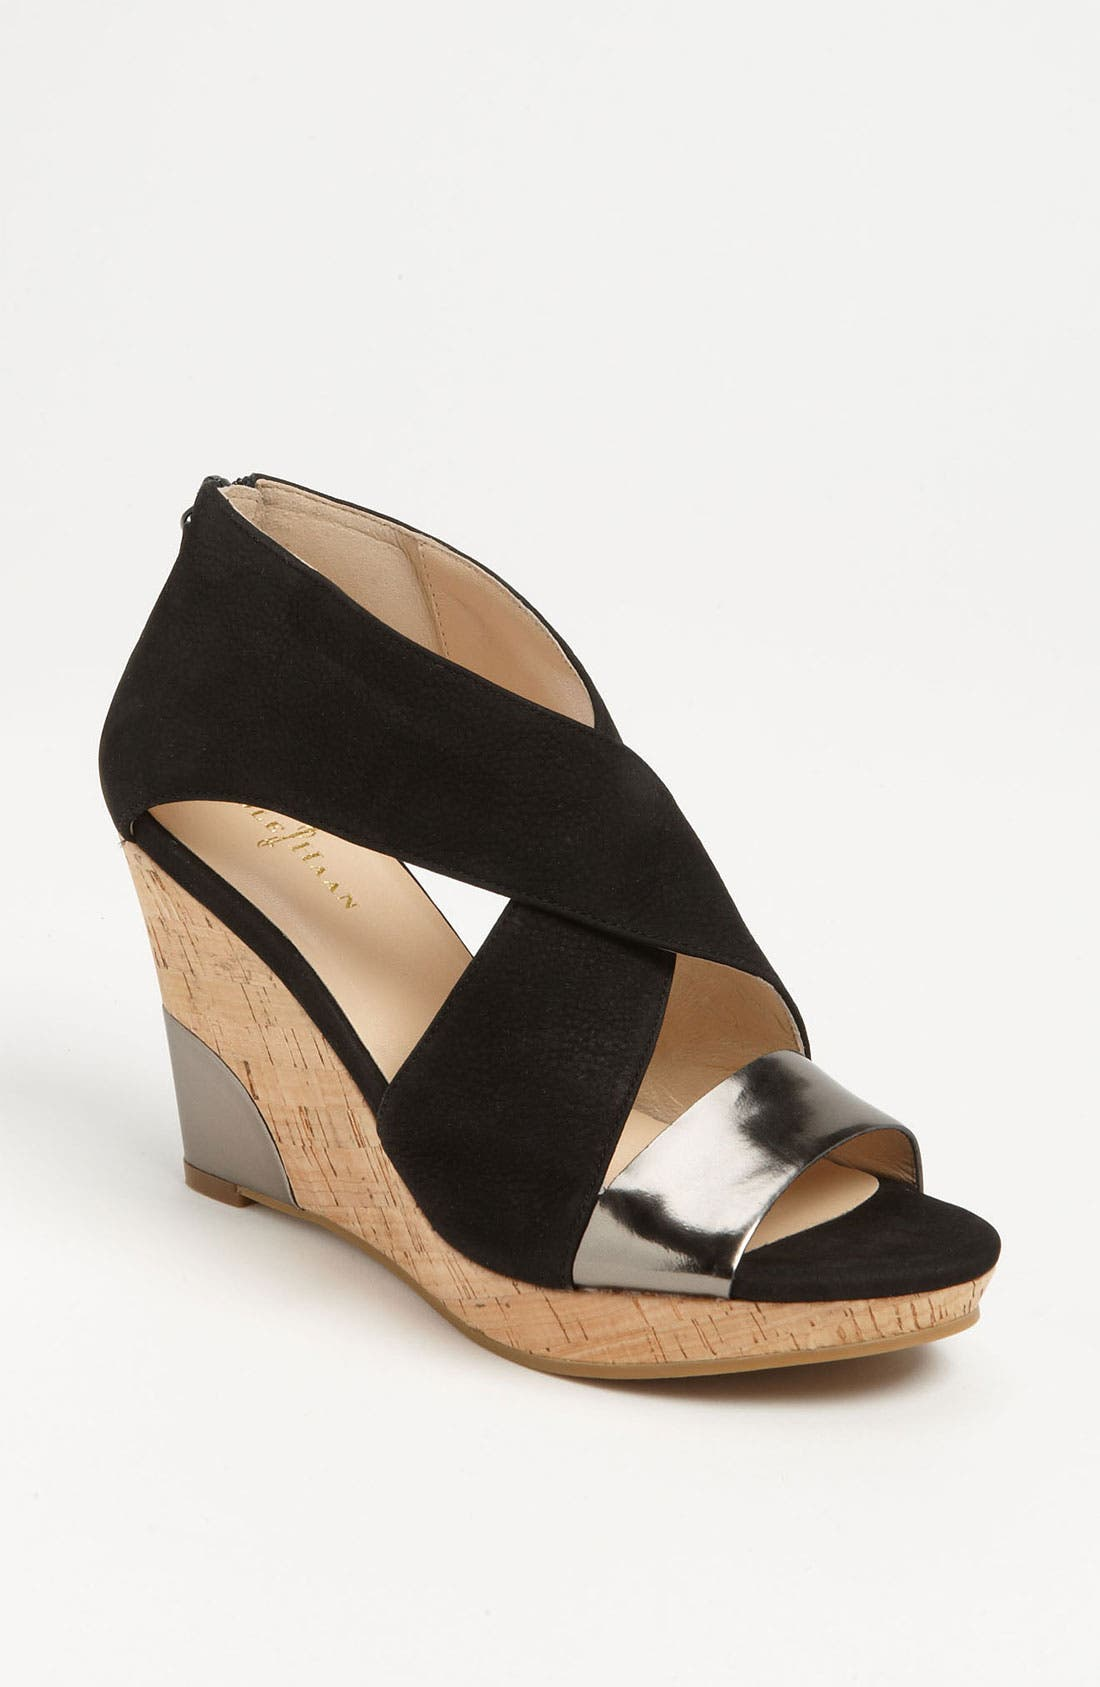 Main Image - Cole Haan 'Air Irving' Wedge Sandal